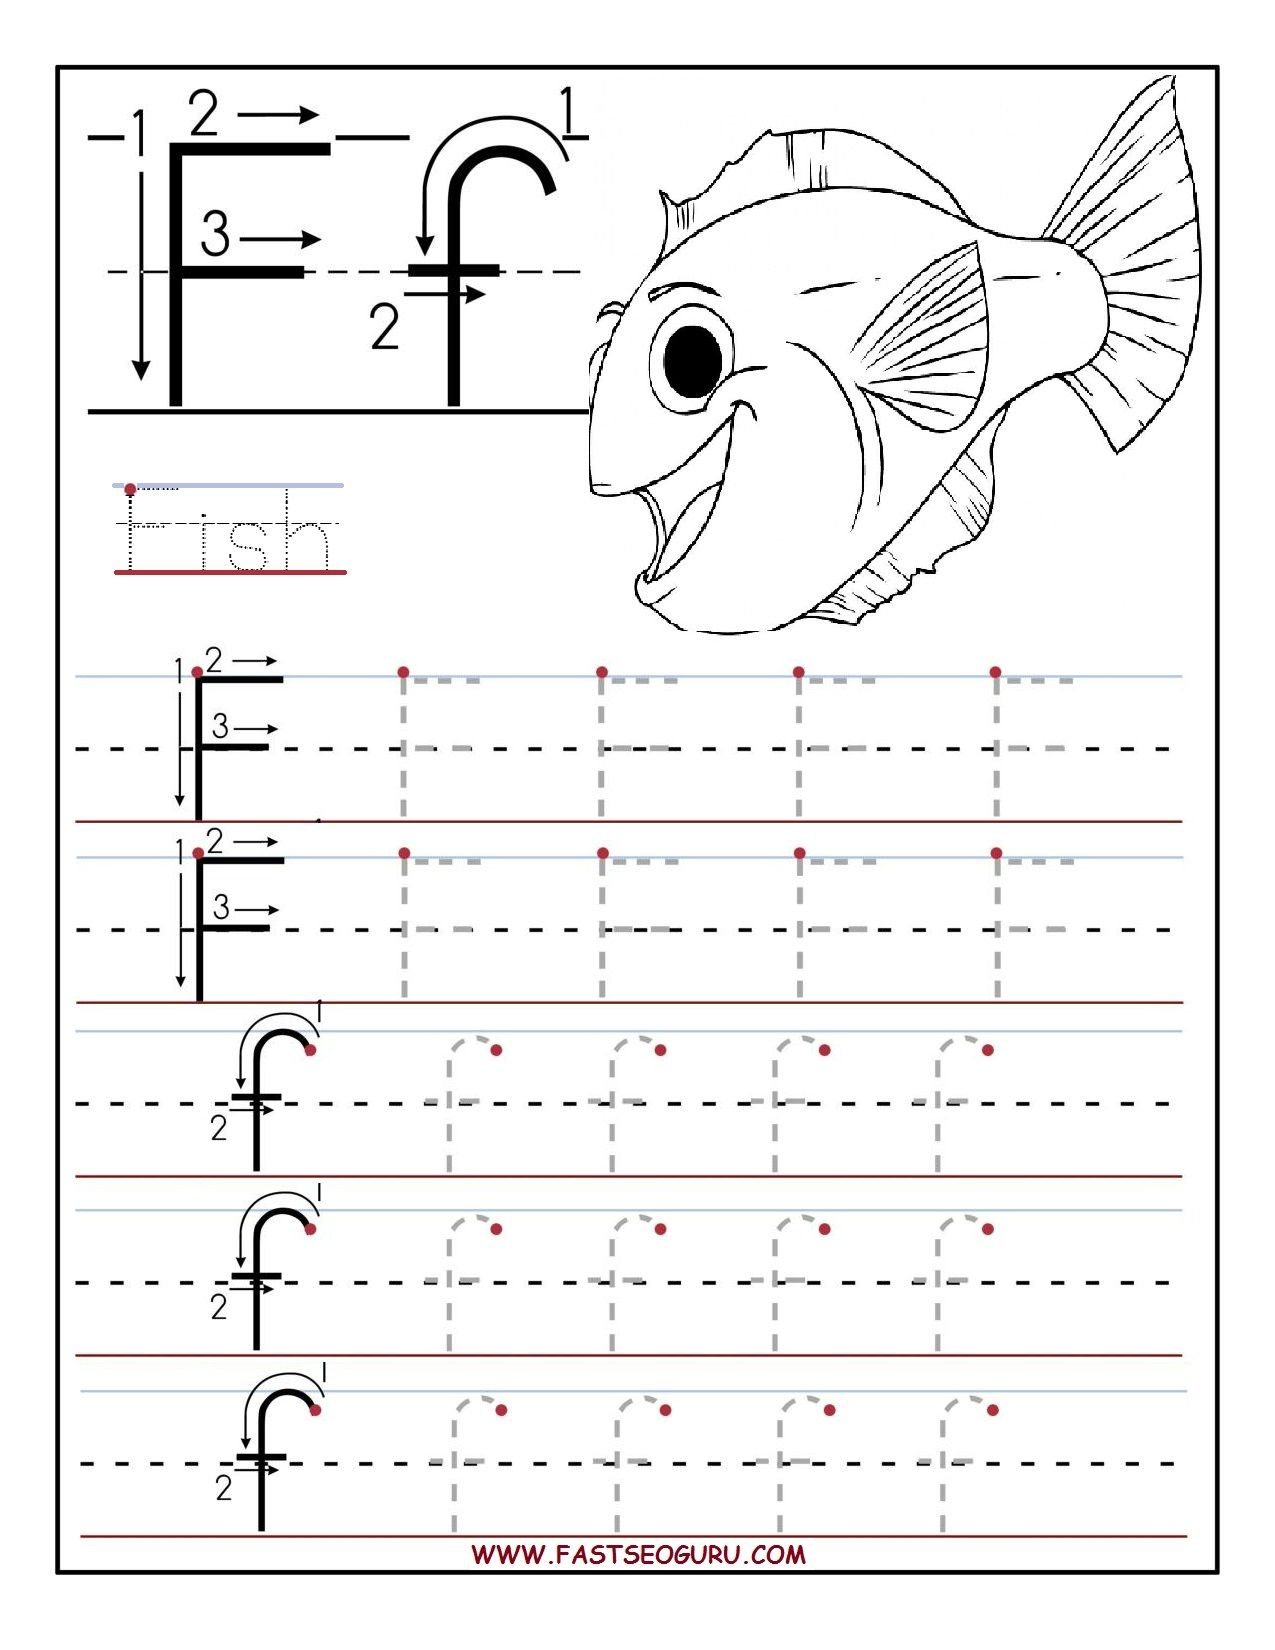 Printable Letter F Tracing Worksheets For Preschool throughout Letter F Tracing Worksheets Preschool